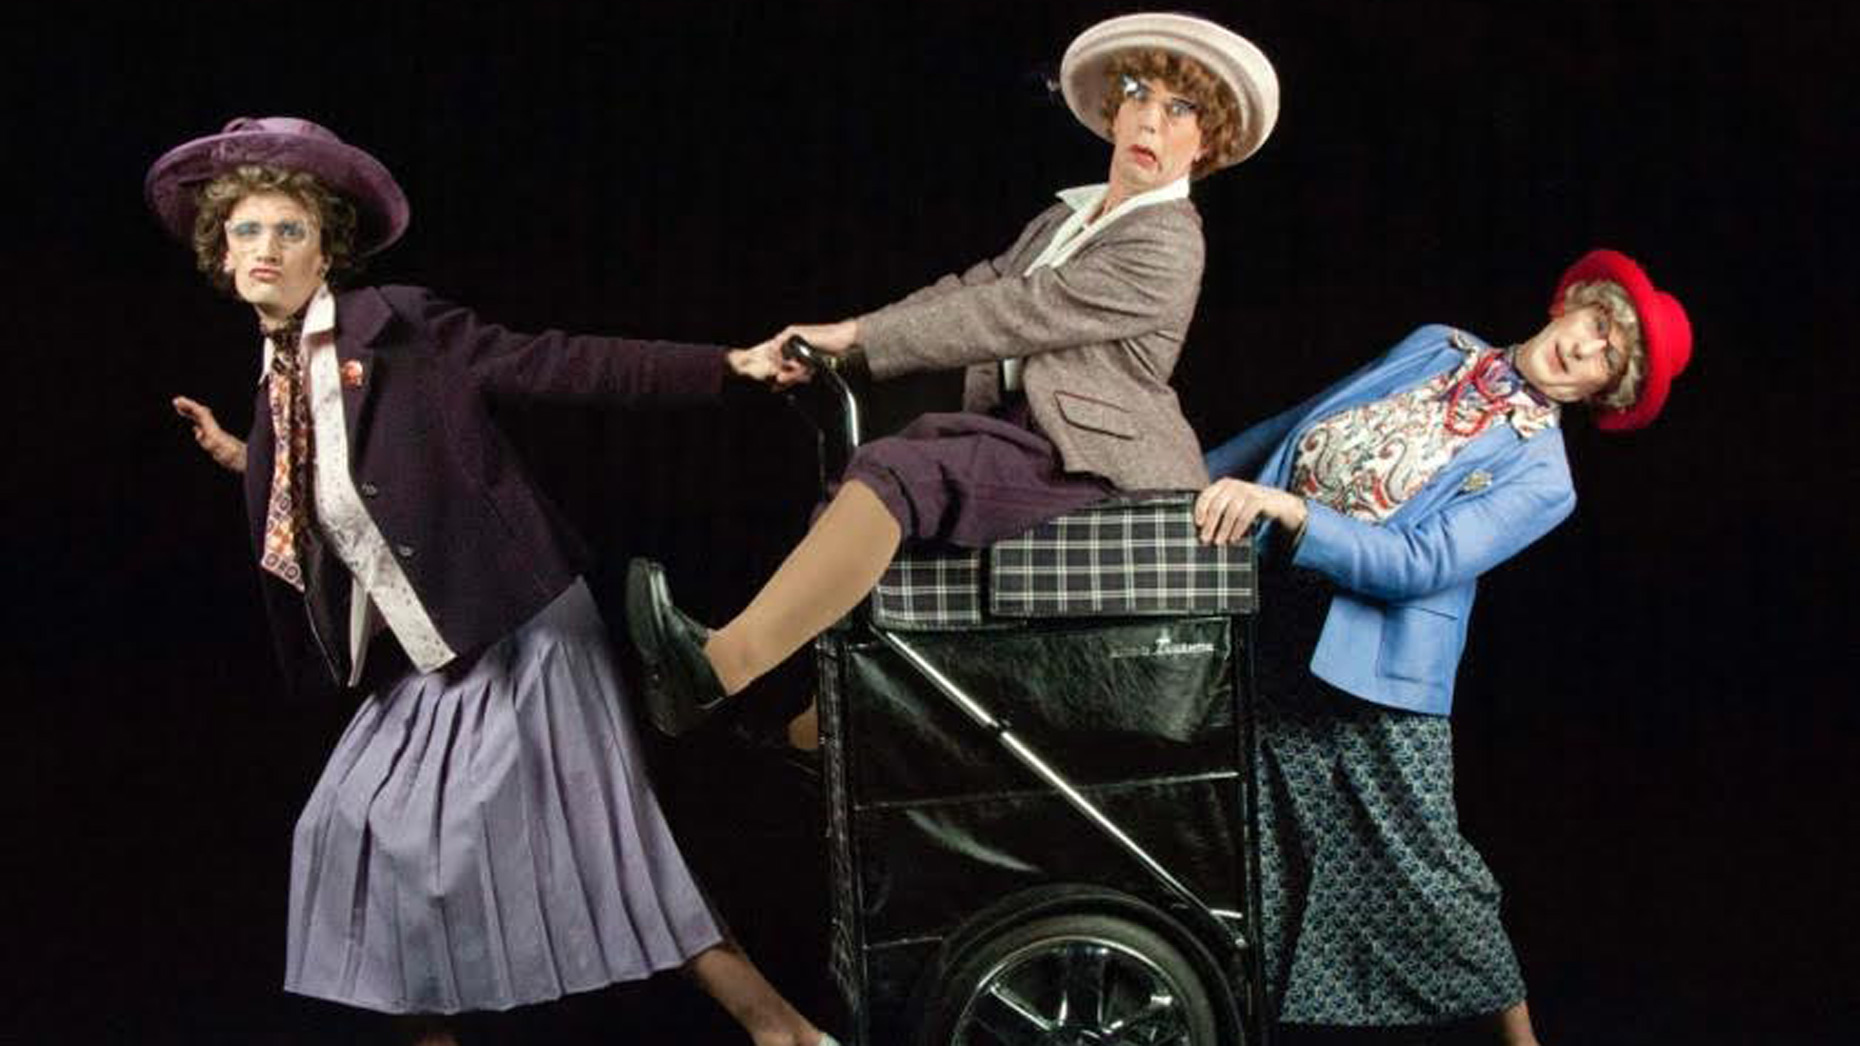 'Granny Turismo' will be performing at the festival in Caistor on Sunday